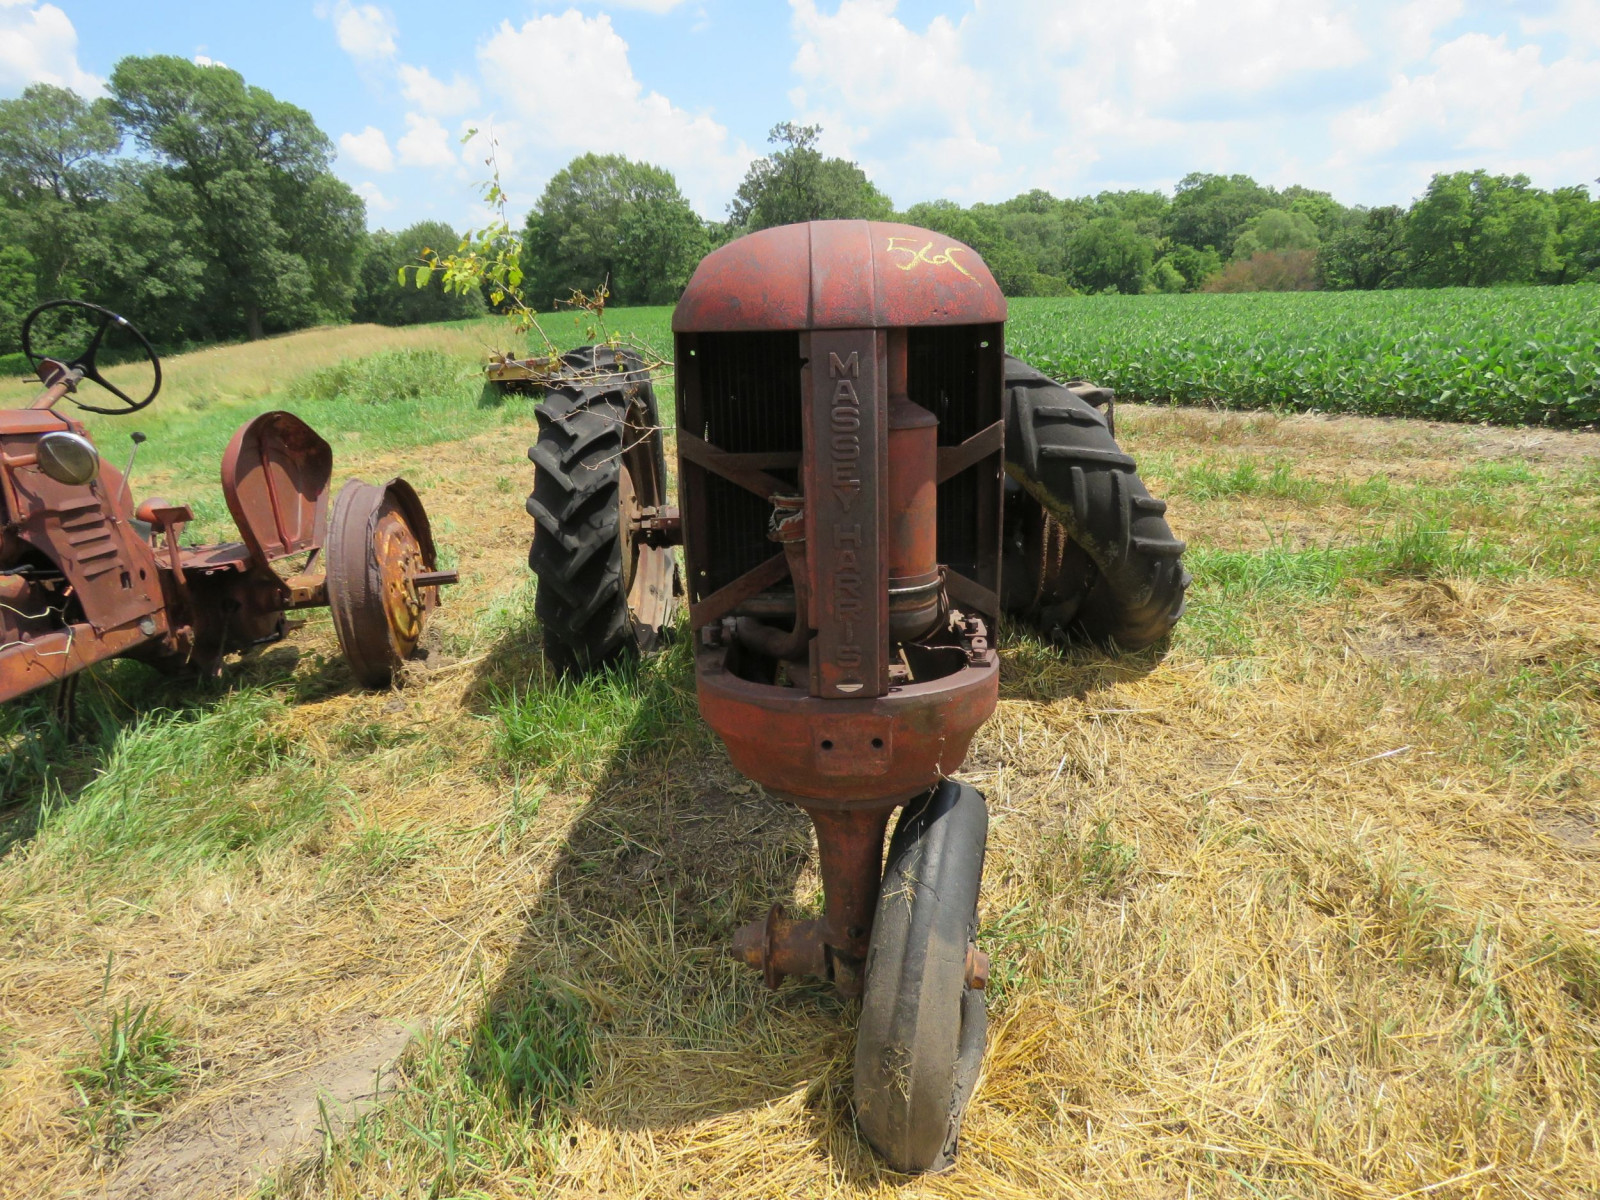 Massey Harris Tractor for Project or Parts - Image 2